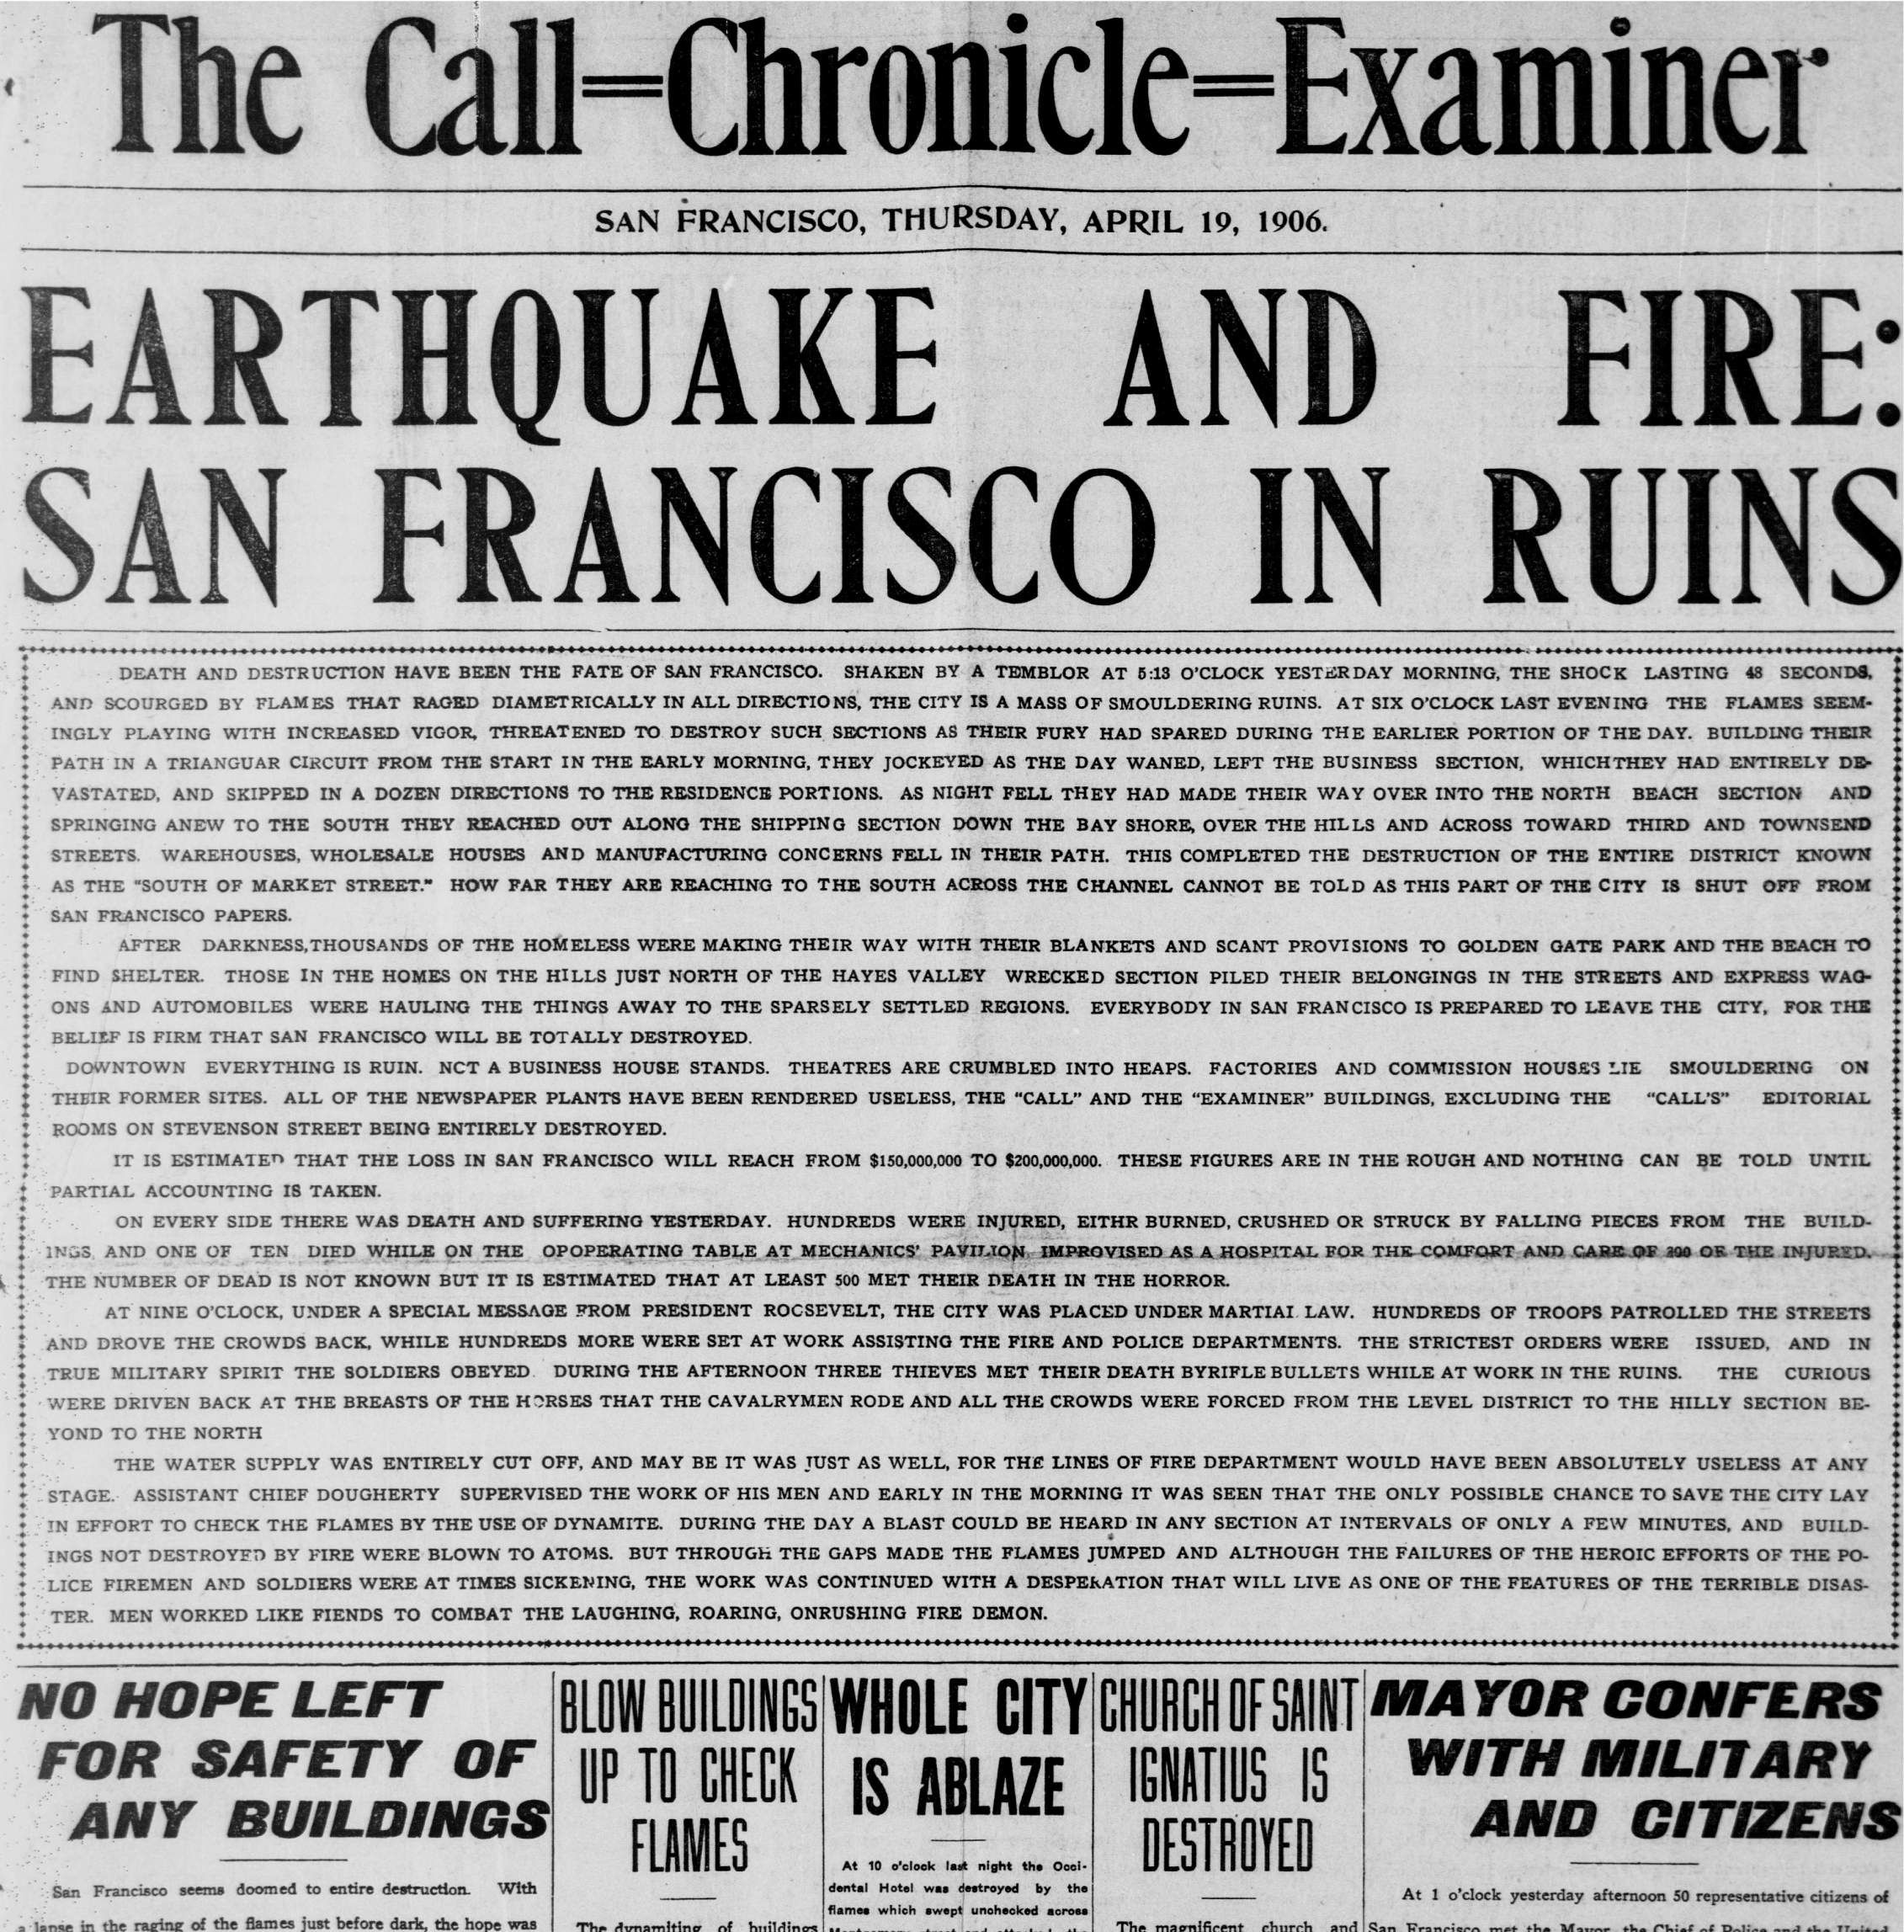 these three san francisco papers merged to put out one edition after the earthquake dated